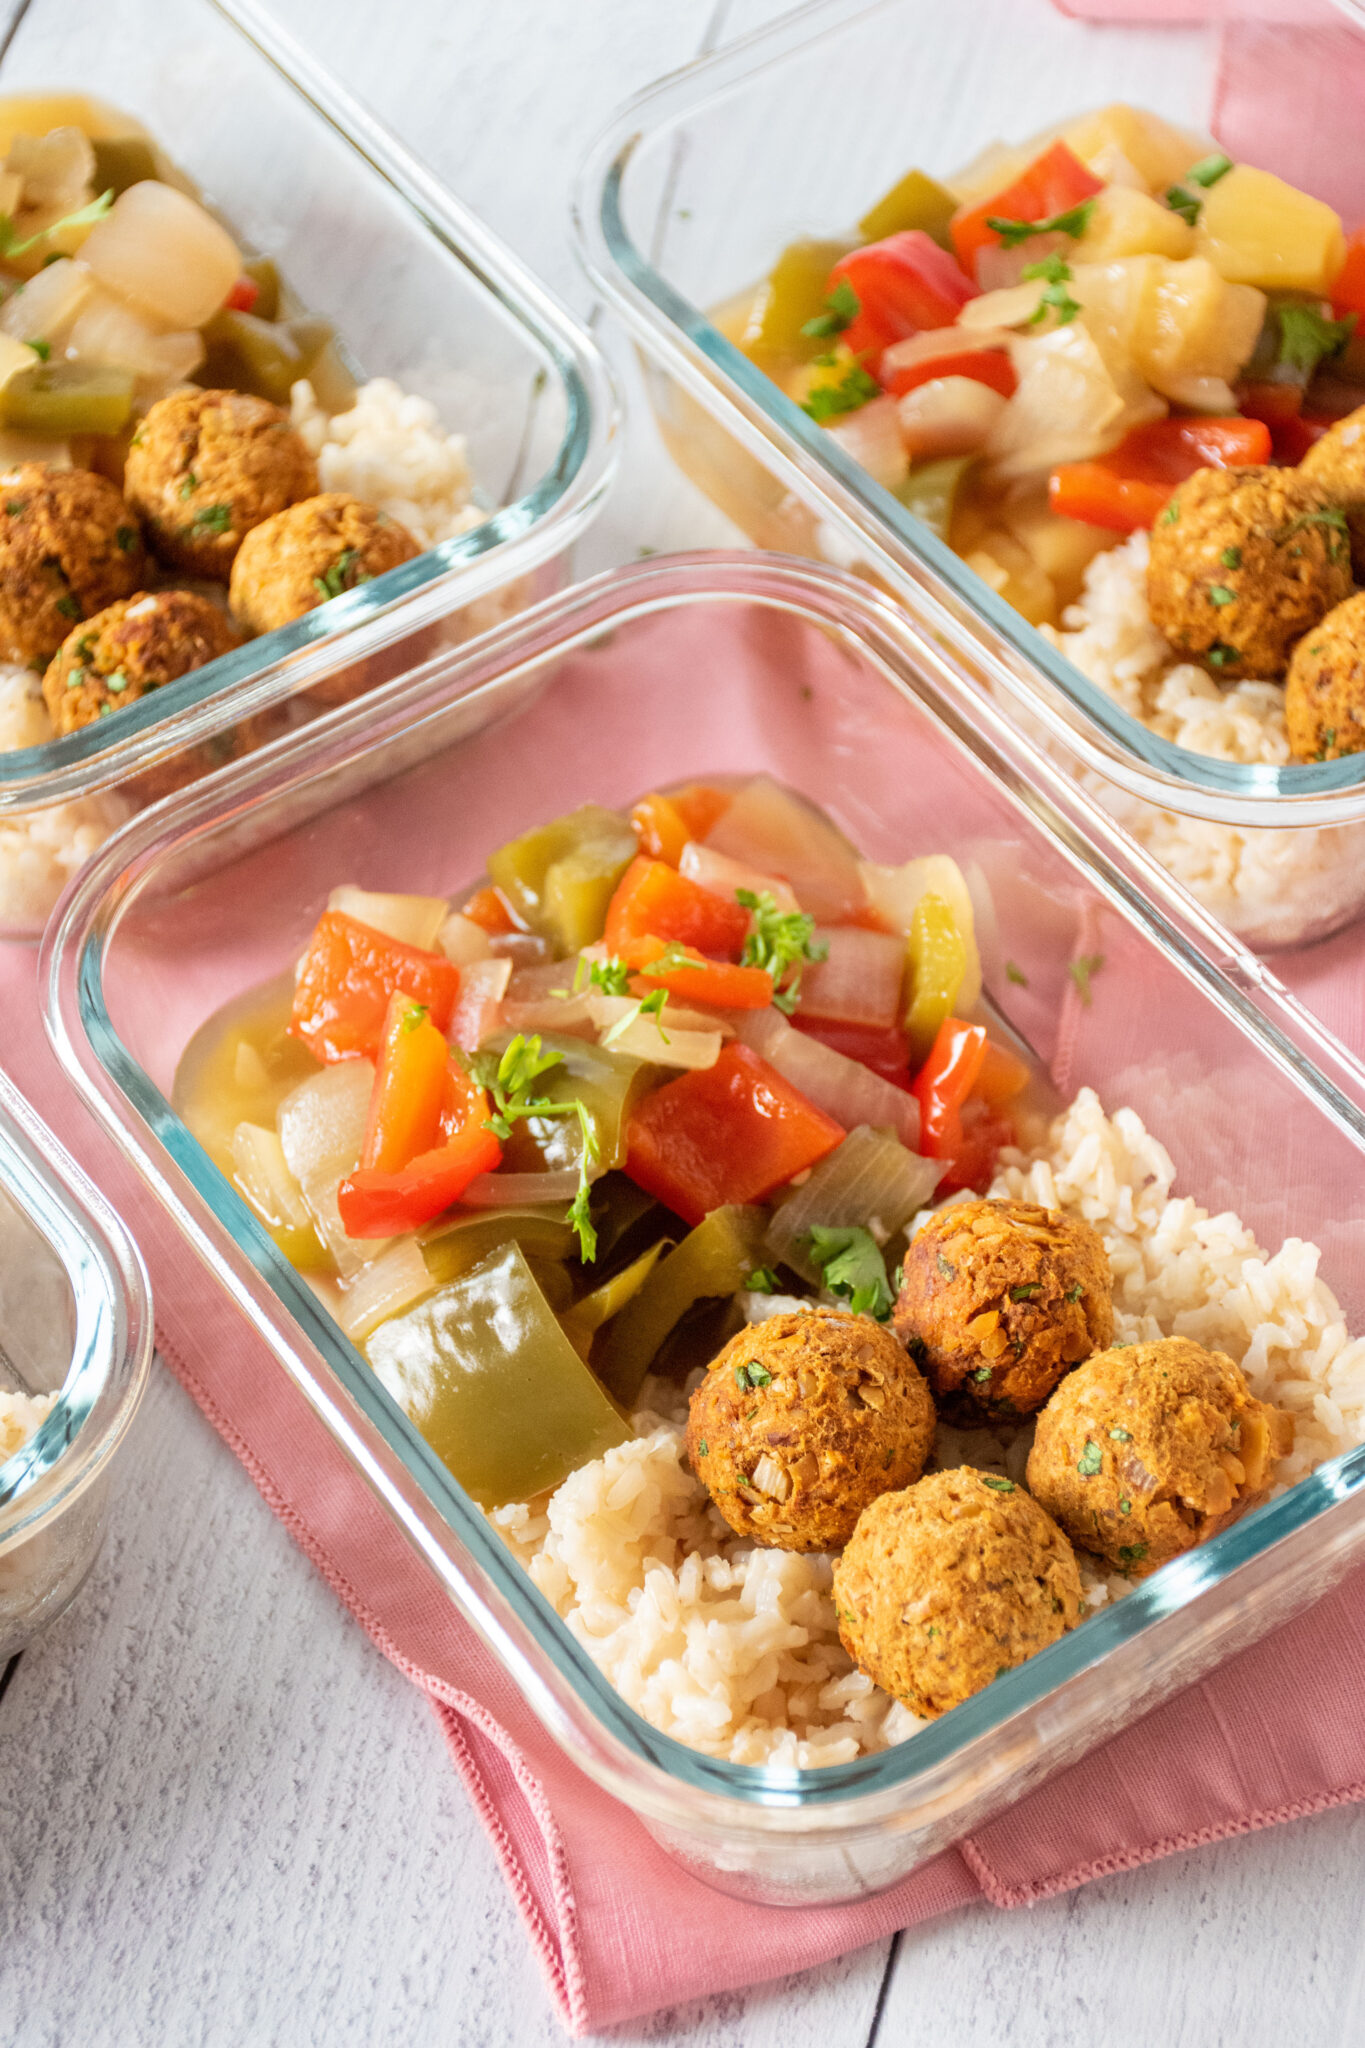 Glass meal prep containers, filled with rice, meatballs, and onions and peppers.